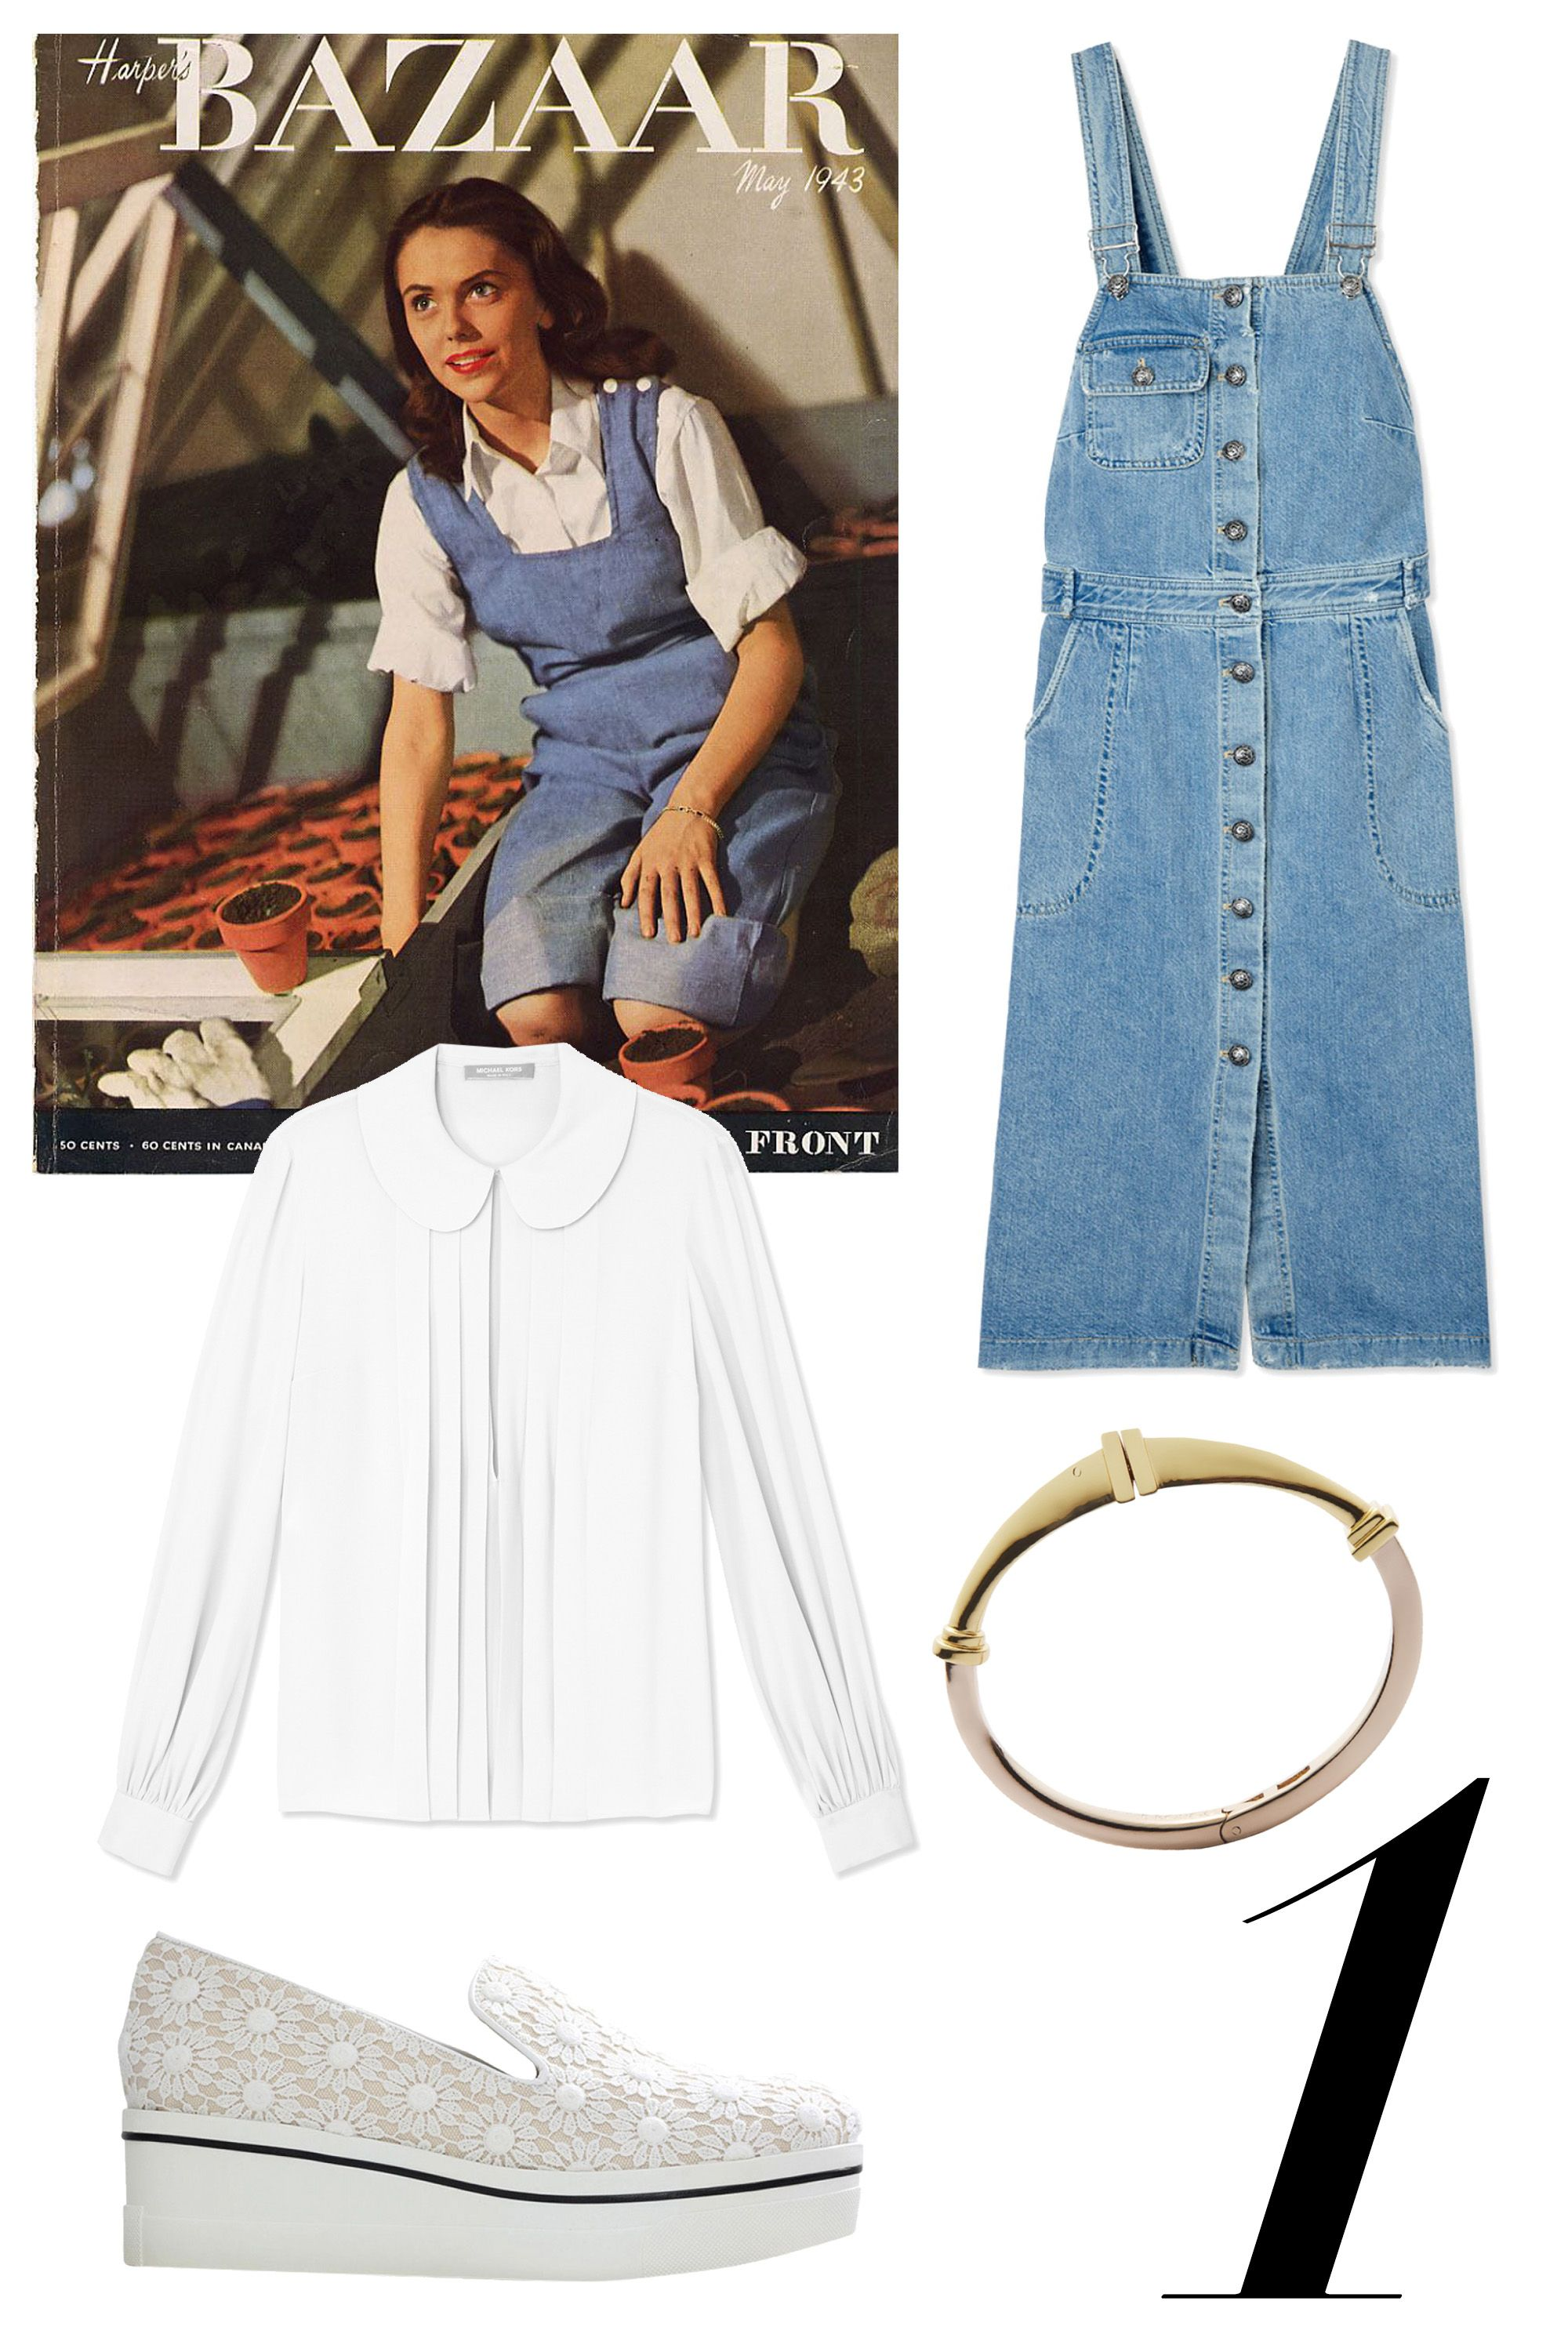 "A teenage Lauren Bacall celebrated garden-chic for Spring in classic overalls and Dorothy-style pigtails. Modernize this look by opting for an overall dress, a pleated georgette blouse and slip-on platforms. Add a cuff to accent your look.   <strong>Shop The Look: </strong><em>Michael Kors blouse, $950, <a target=""_blank"" href=""http://shop.harpersbazaar.com/designers/michael-kors/white-georgette-pleated-blouse/"">ShopBAZAAR.com.</a>, Sea dress, $395, <a target=""_blank"" href=""http://shop.harpersbazaar.com/designers/sea/denim-overalls-dress/"">ShopBAZAAR.com</a>., Eddie Borgo cuff, $225, <a target=""_blank"" href=""http://shop.harpersbazaar.com/designers/eddie-borgo/plinth-cuff/"">ShopBAZAAR.com.</a>, Stella McCartney sneakers, $565, <a target=""_blank"" href=""http://shop.harpersbazaar.com/designers/stella-mccartney/lace-platform-slip-on-sneakers/"">ShopBAZAAR.com.</a></em>"